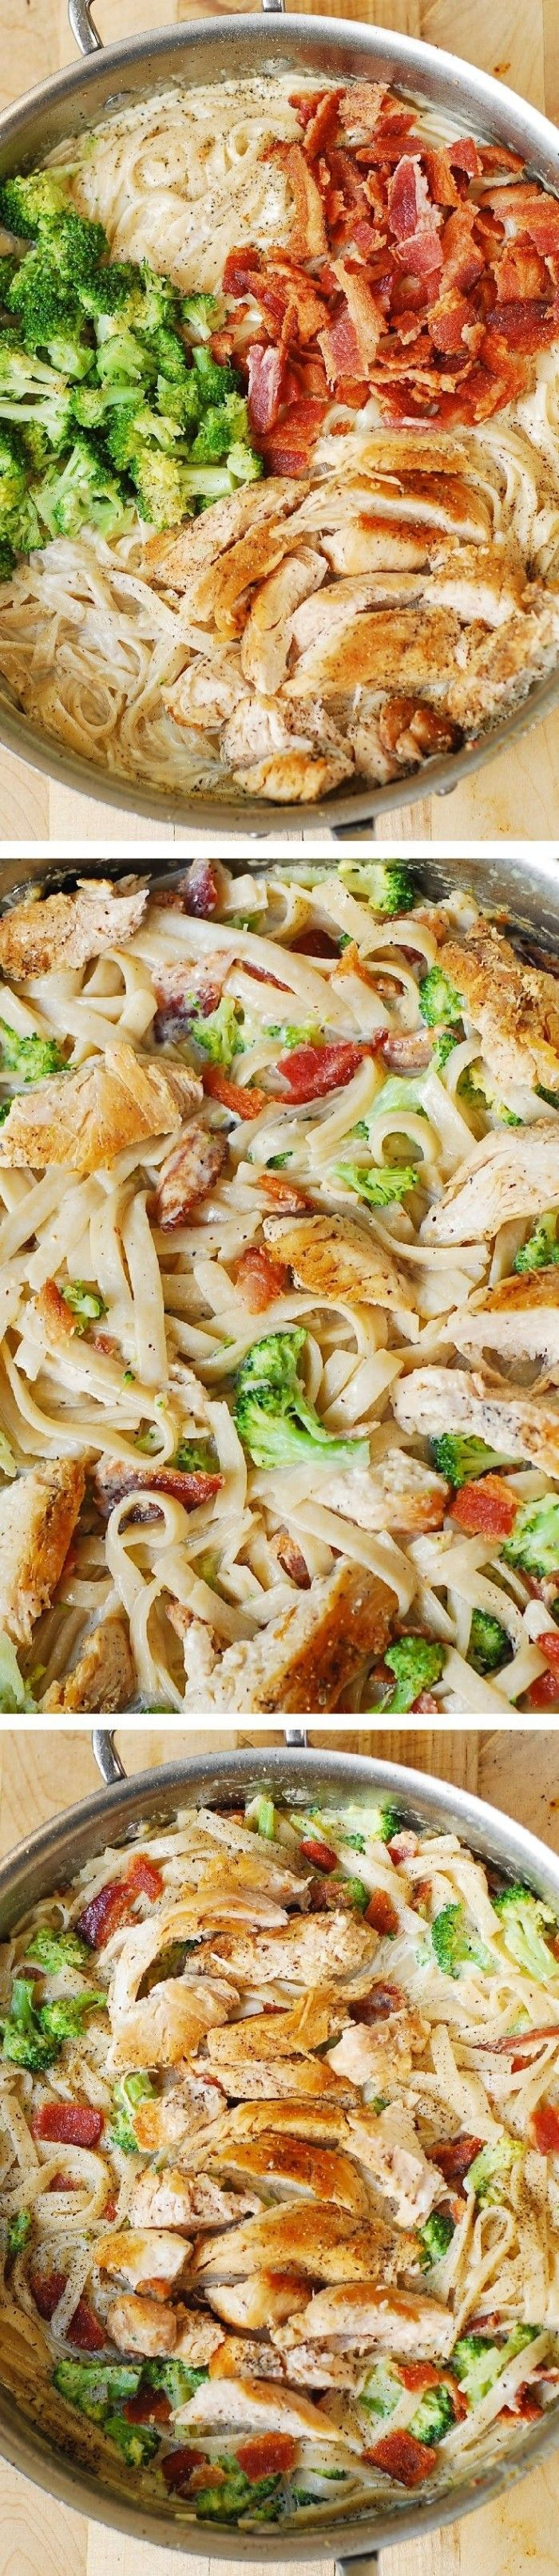 Creamy Broccoli, Chicken, and Bacon Pasta | Tastefulonly